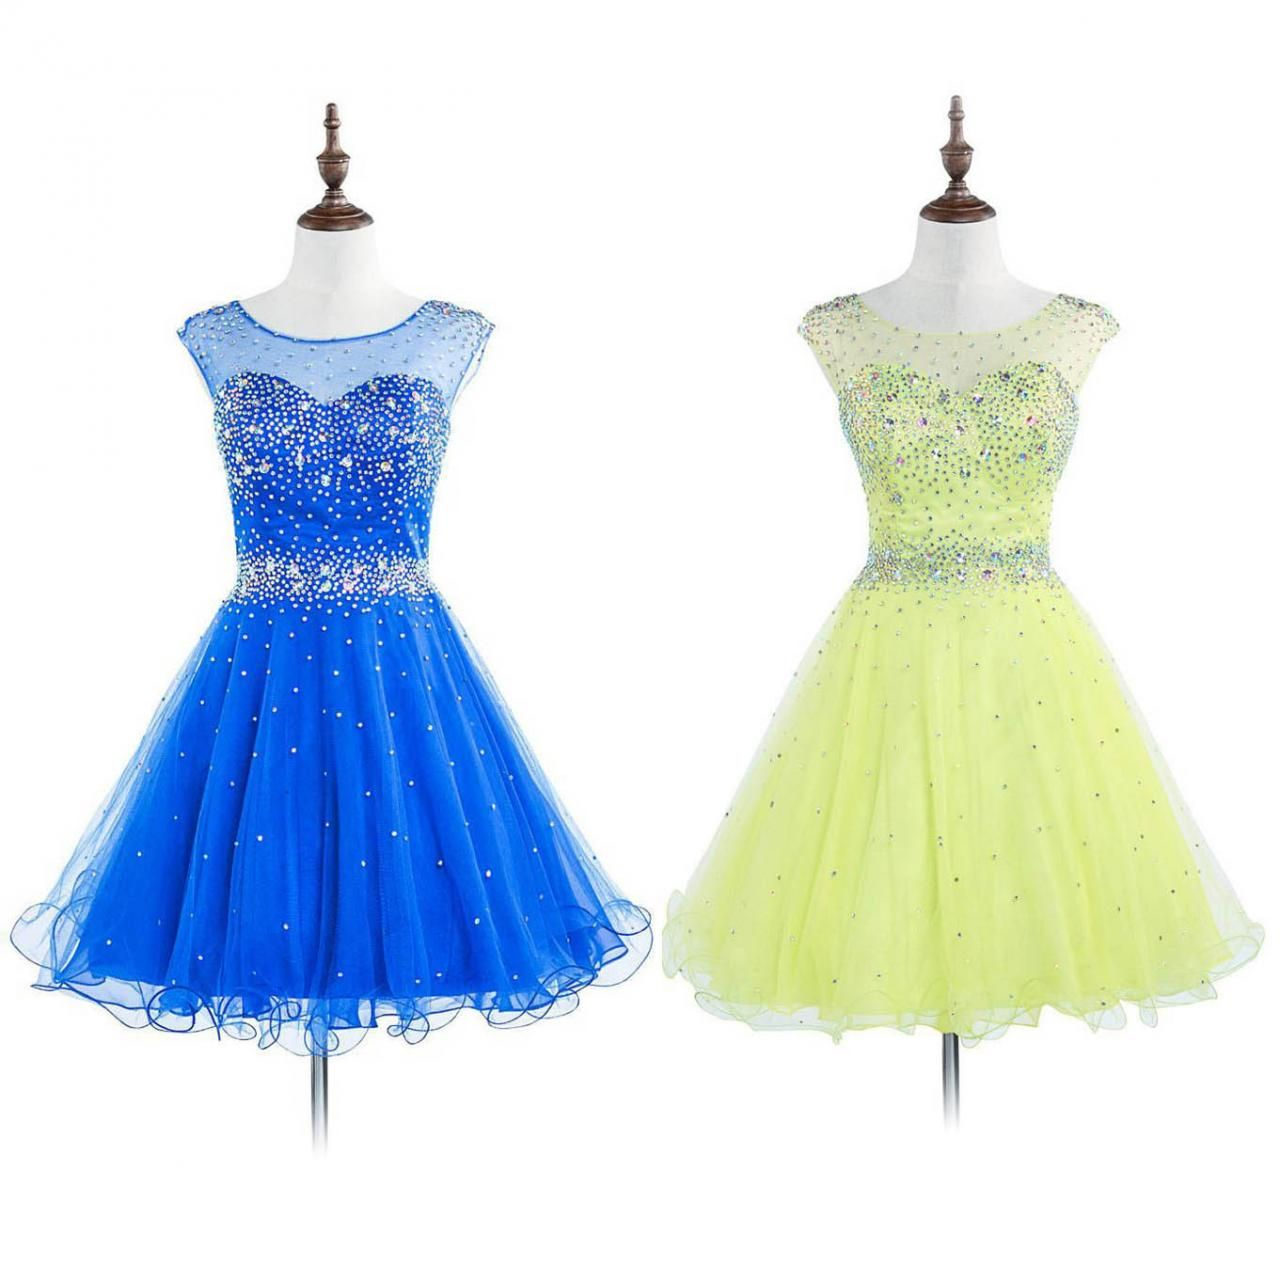 Royal blue open back prom dresses with sparkle beads illusion mini